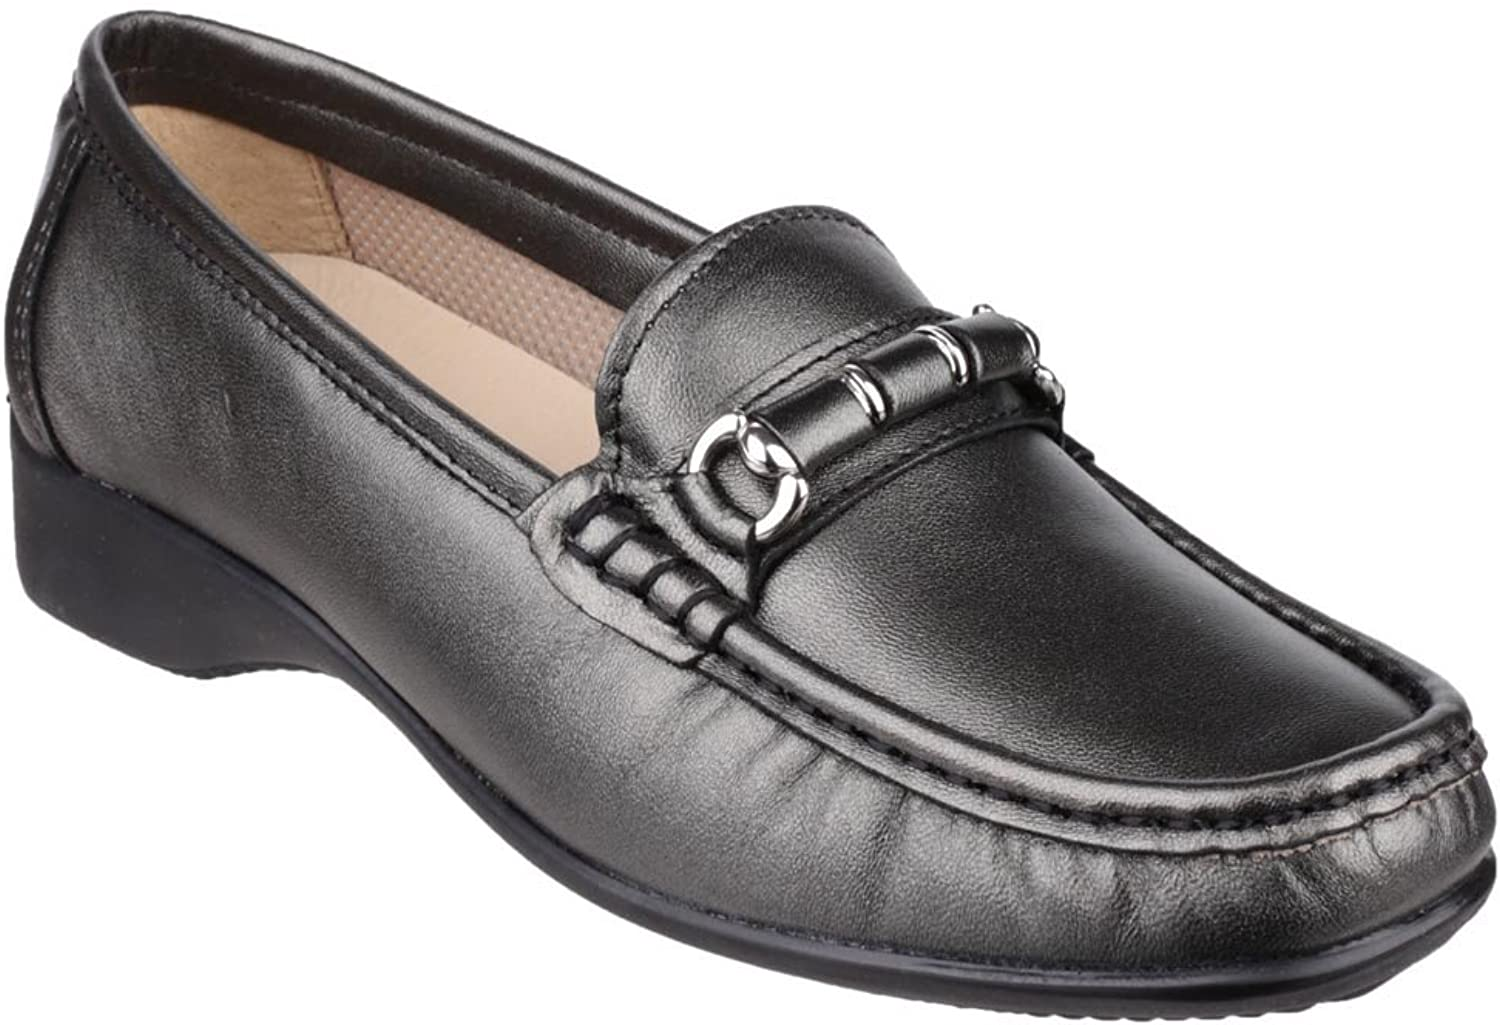 Cotswold Womens Barrington Slip on Loafer shoes Pewter Size UK 8 EU 42